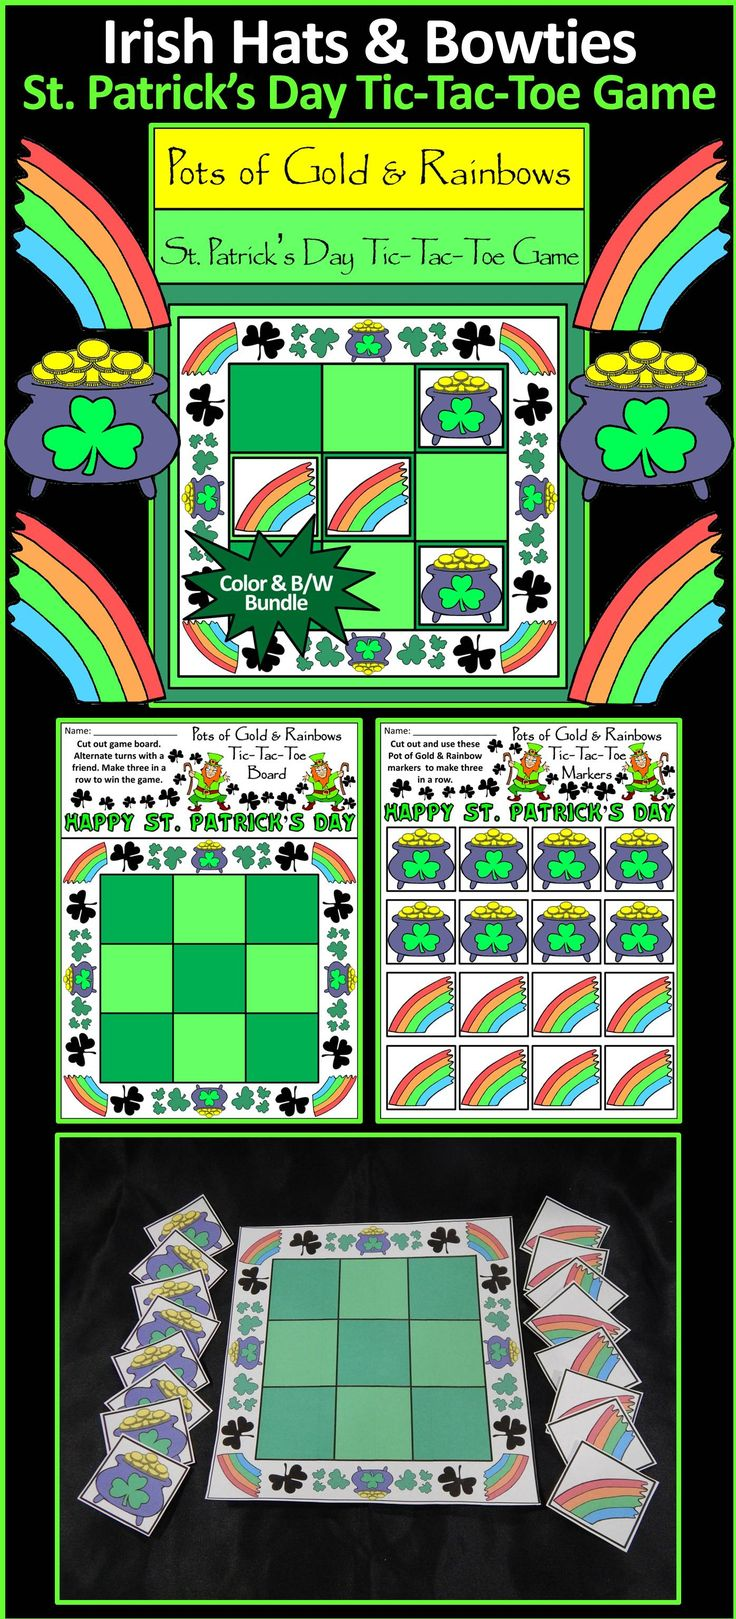 Leprechaun Pots of Gold & Rainbows St. Patrick's Day Tic-Tac-Toe Game: Contains all the necessary components for playing the classic game. All pieces are decorated with Leprechaun Pots of Gold & Rainbows for a rollicking Irish celebration! Great fun as a St. Patrick's Day game or party favor!  #St. #Saint #Patrick's #Day #Leprechaun #Gold #Rainbow #Party #Game #Activities #Teacherspayteachers